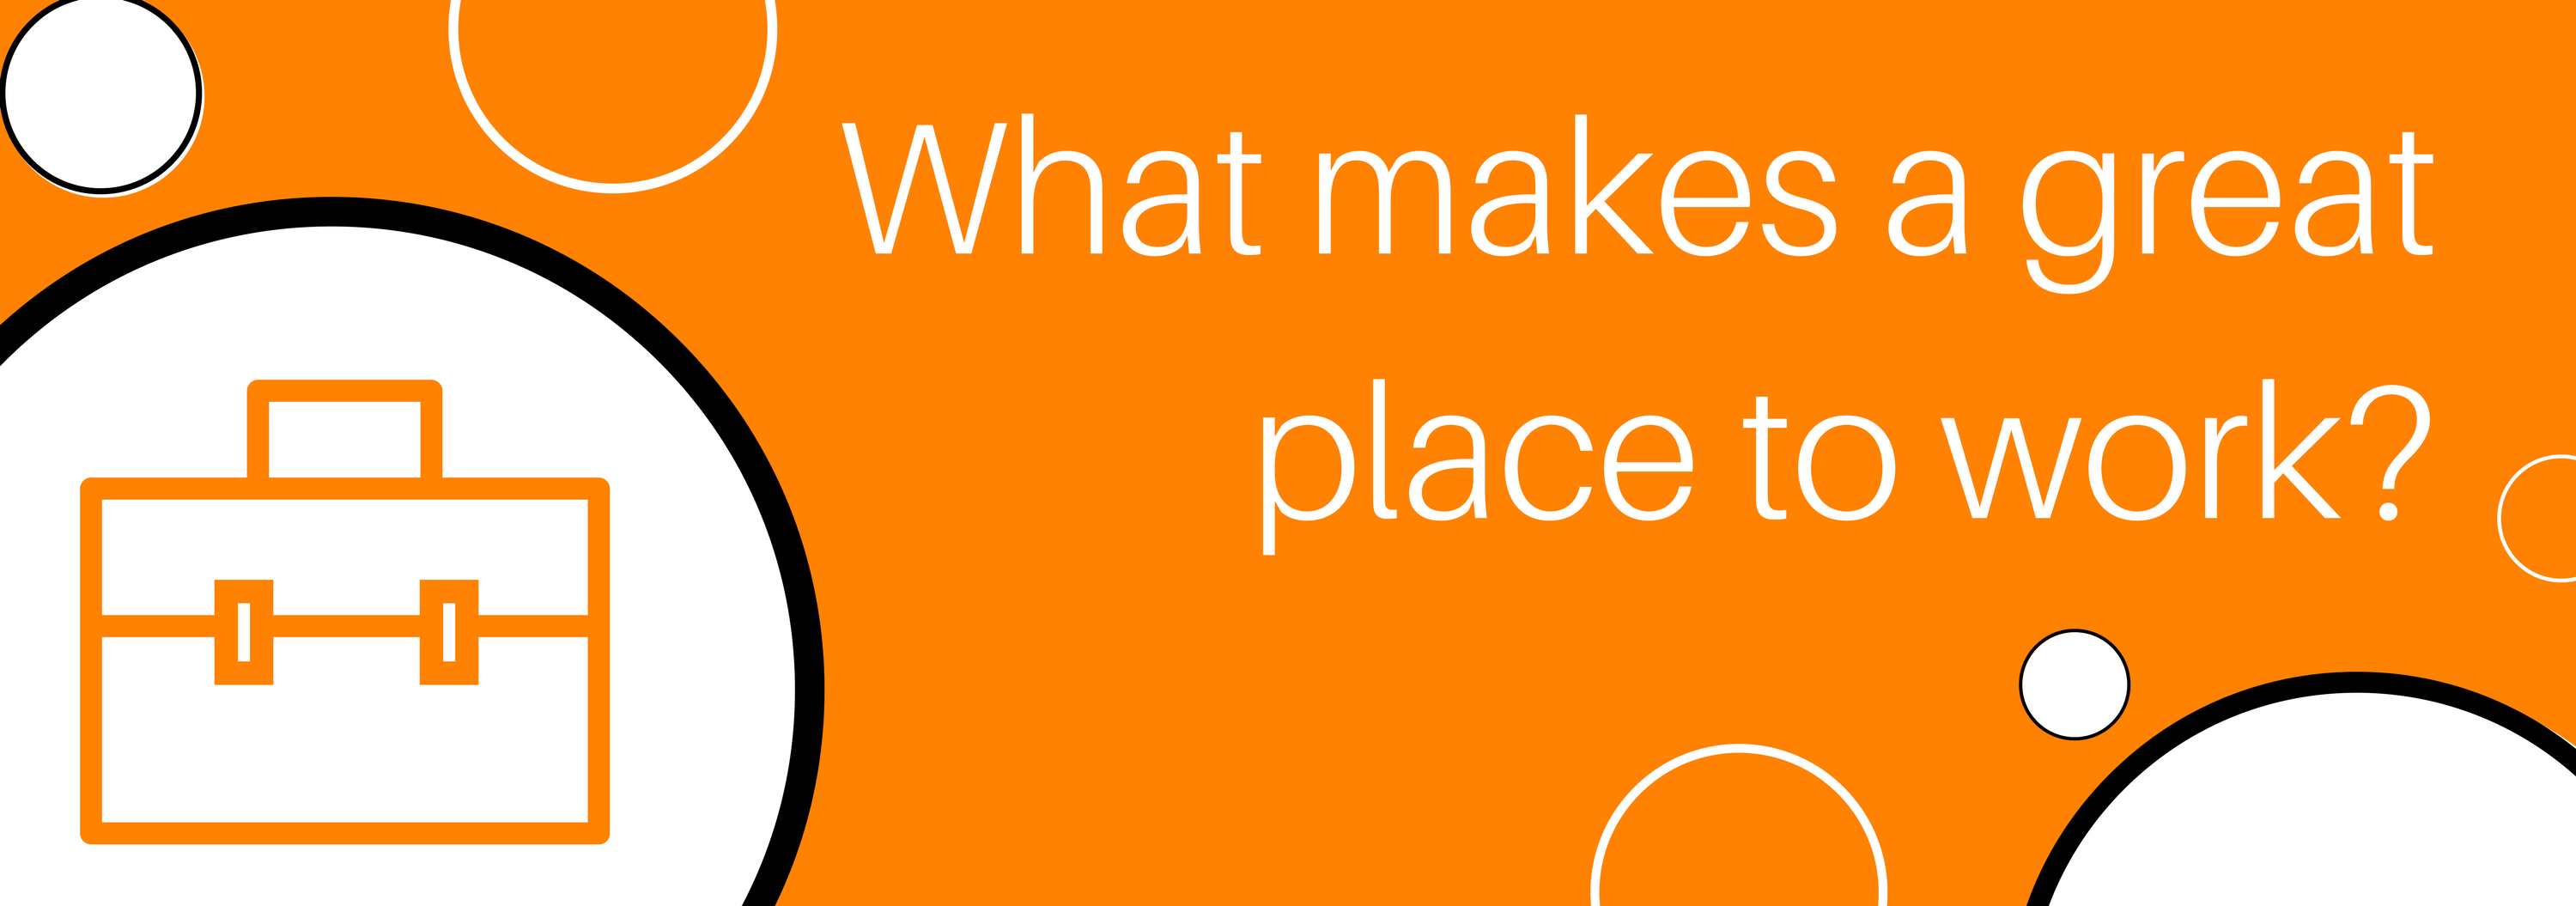 What makes a great place to work?